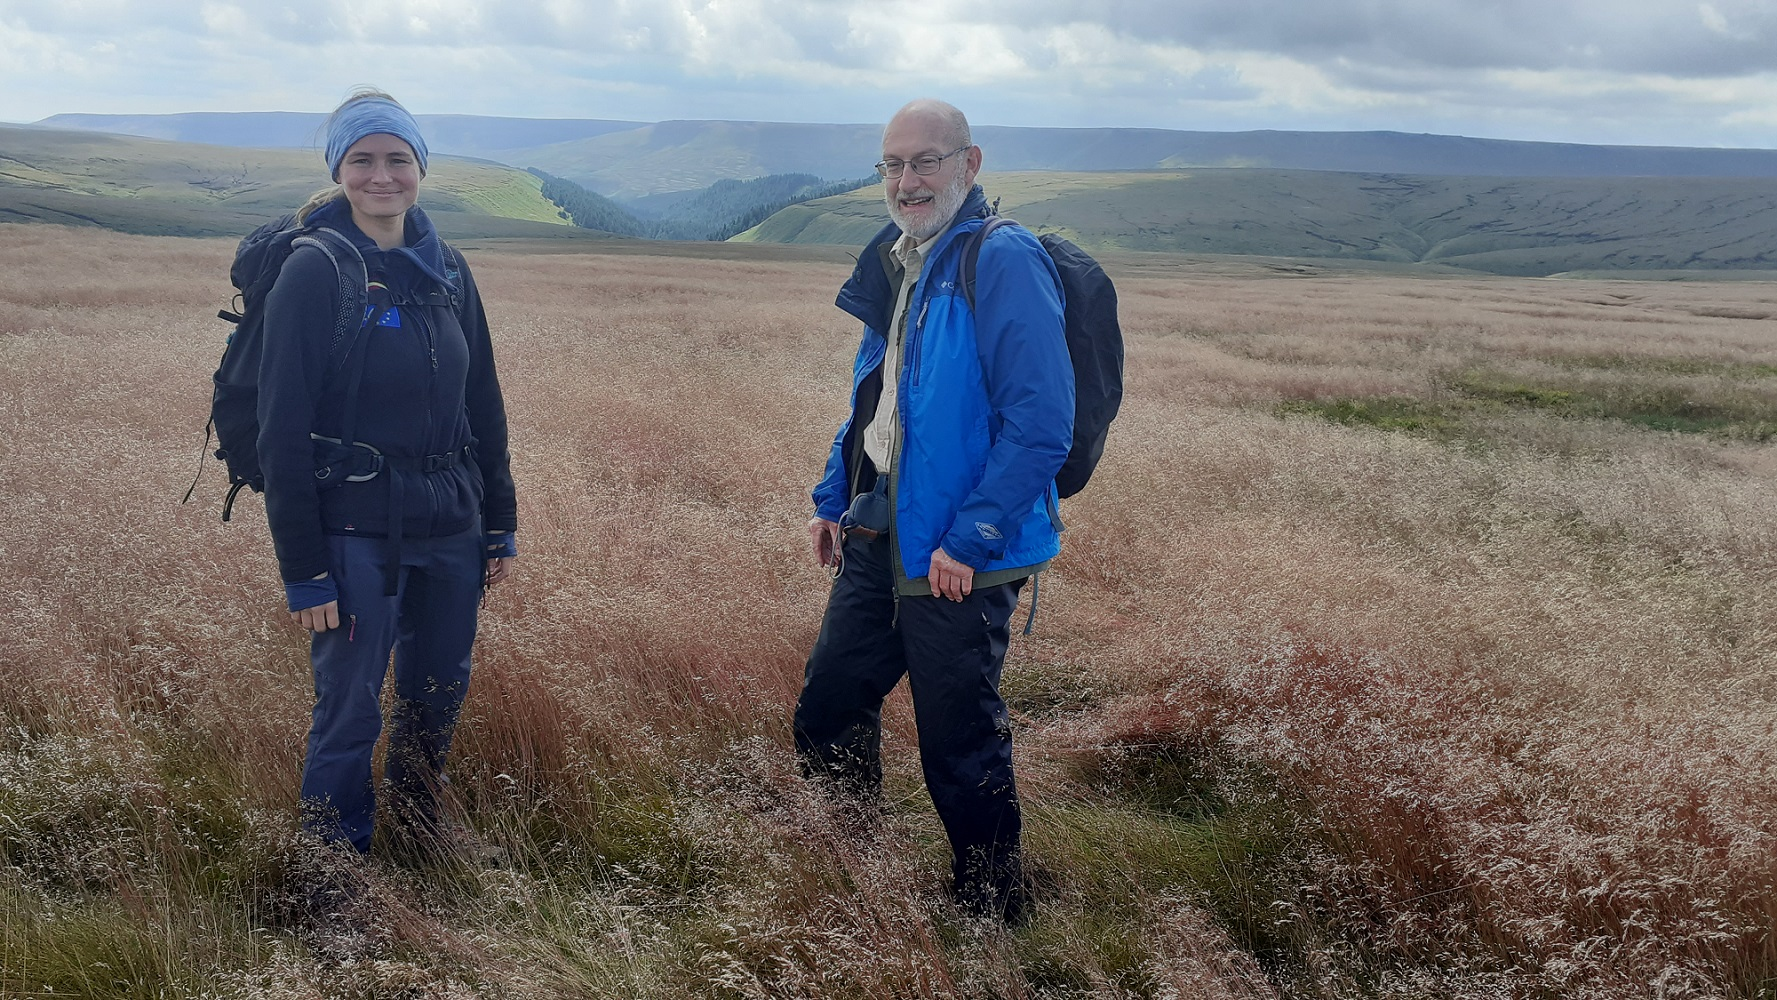 Two figures in blue walking clothes with a view of the Peak District moorland in the background